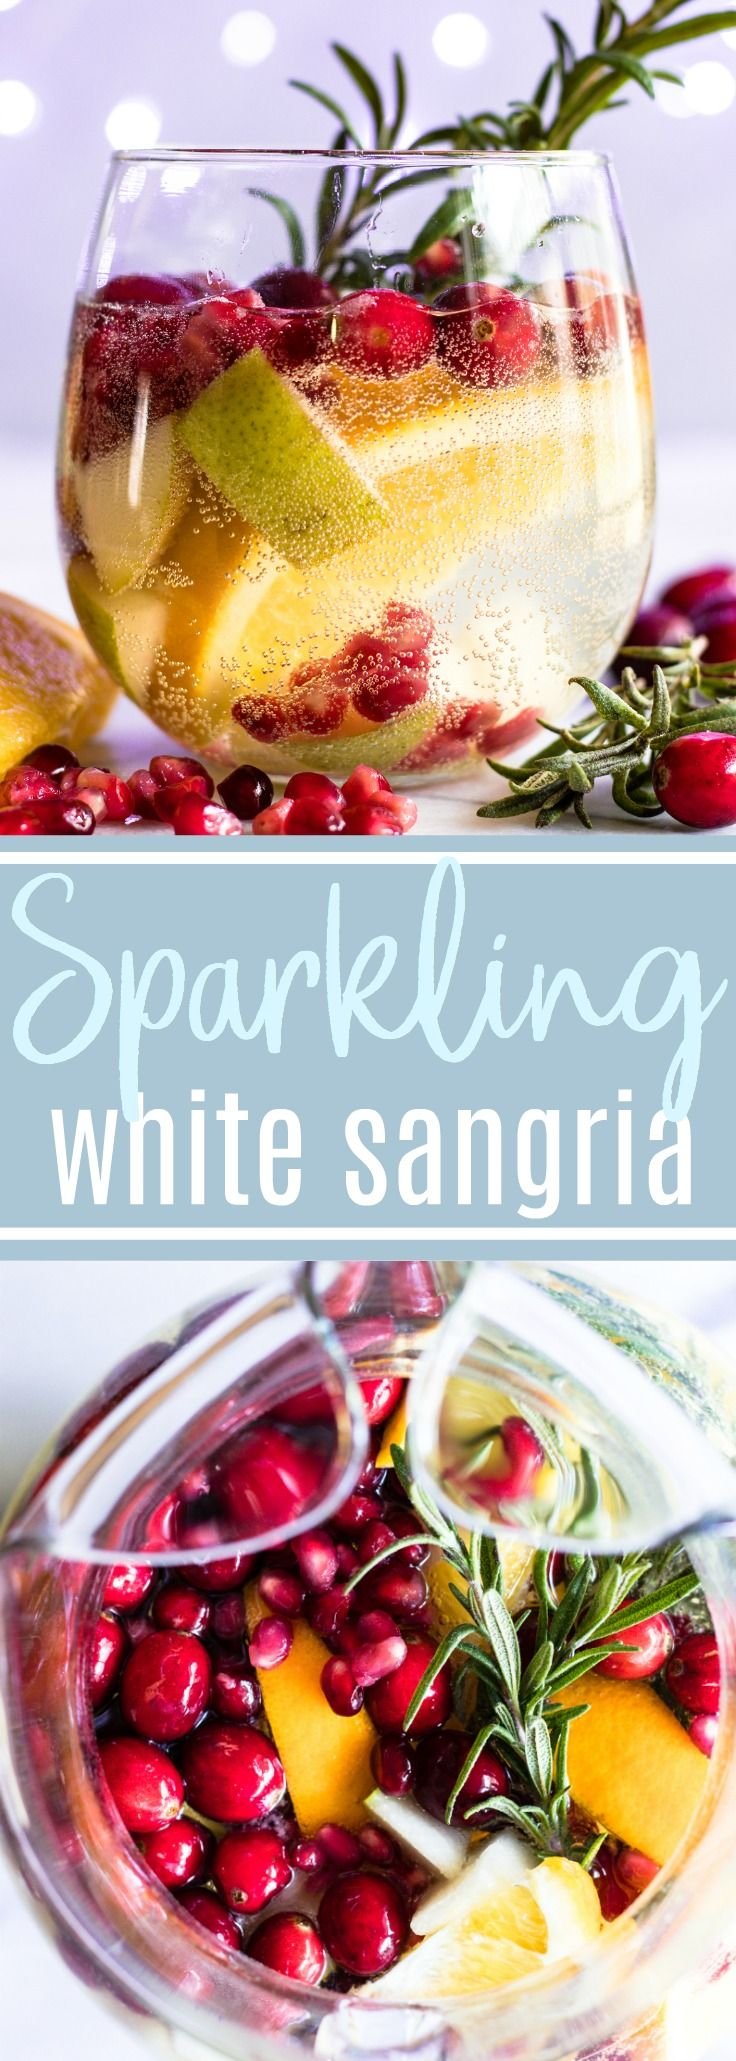 Sparkling White Sangria ~ this festive drink is loaded with cranberries, pears, and oranges...this drink is perfect for celebrating New Years Eve! #sangria #cocktail #drinks